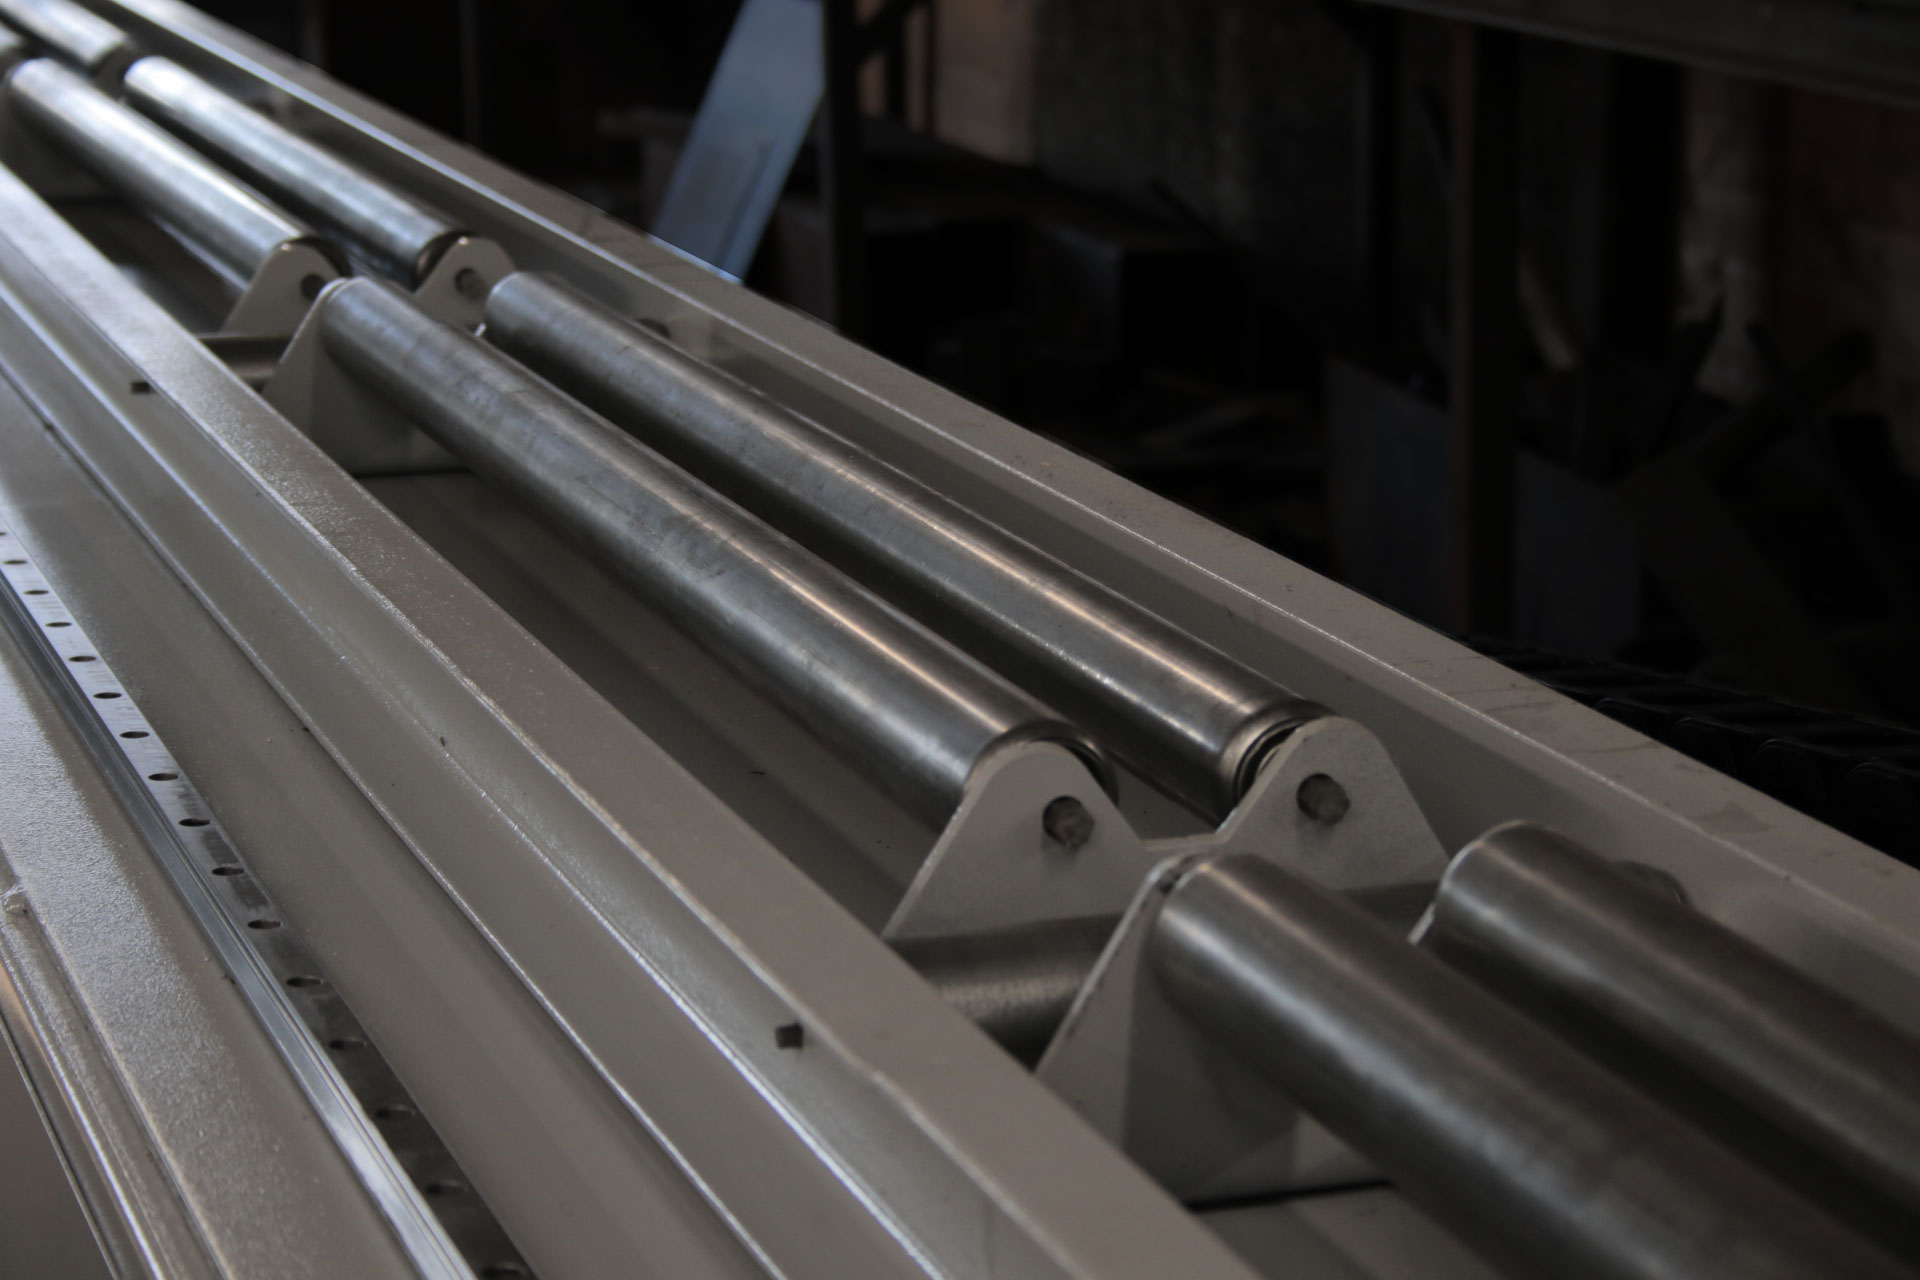 CNC Pipe Cutter - Oversize Pipe Rollers